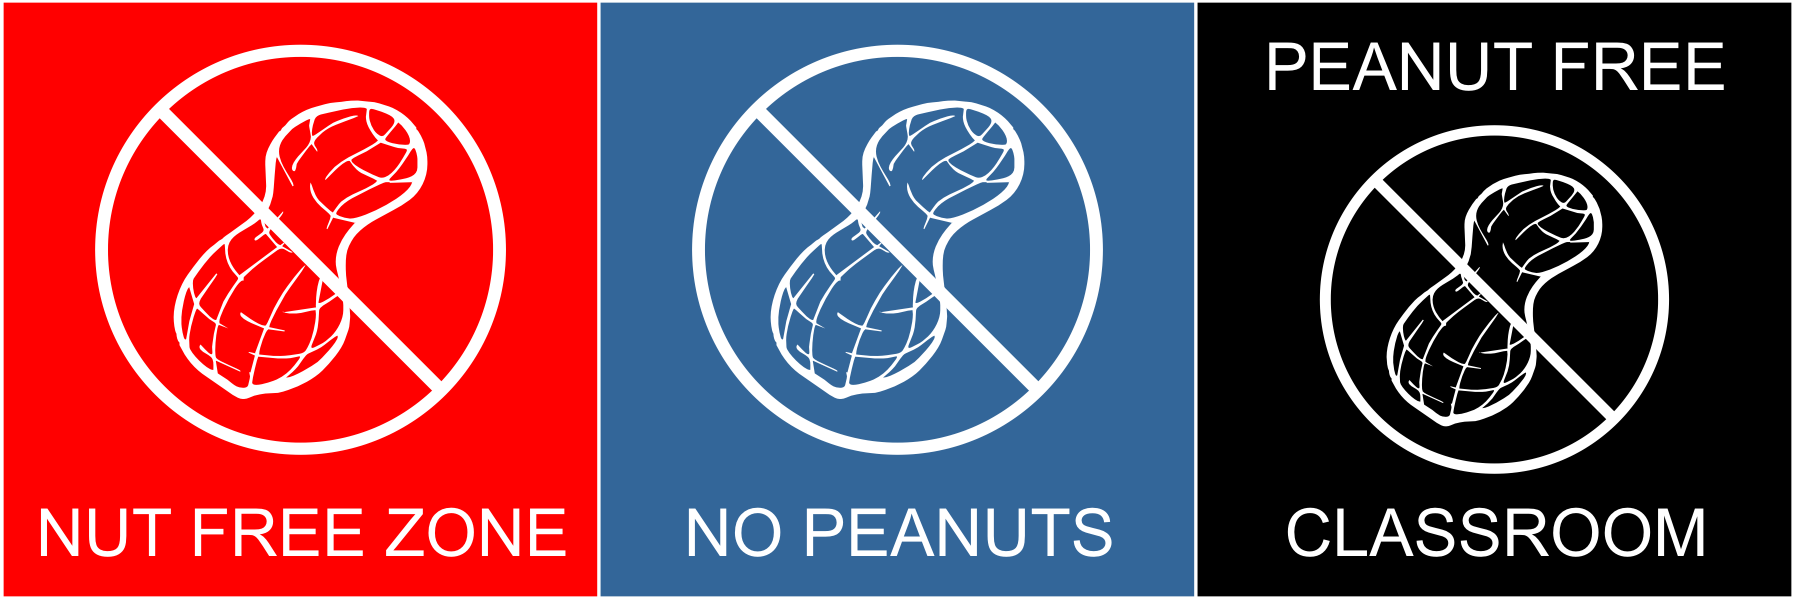 Allergy Sign, Nut Signs, Nut Free, No Peanuts